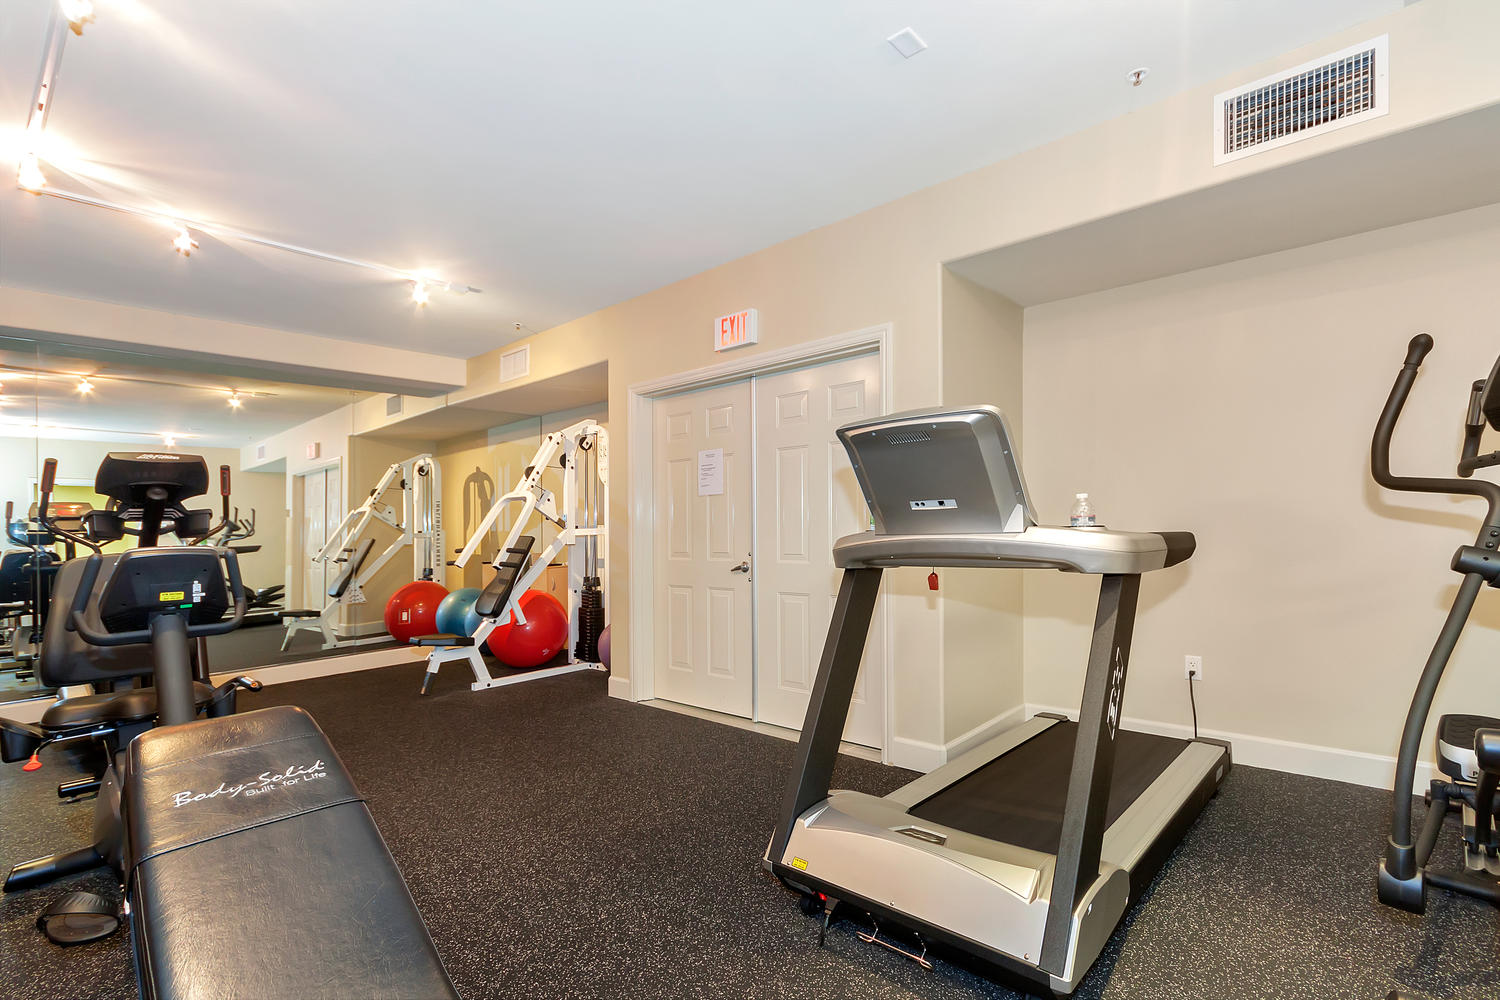 1800 Alma Ave Unit 203 Walnut-large-032-12-Gym 2-1500x1000-72dpi.jpg